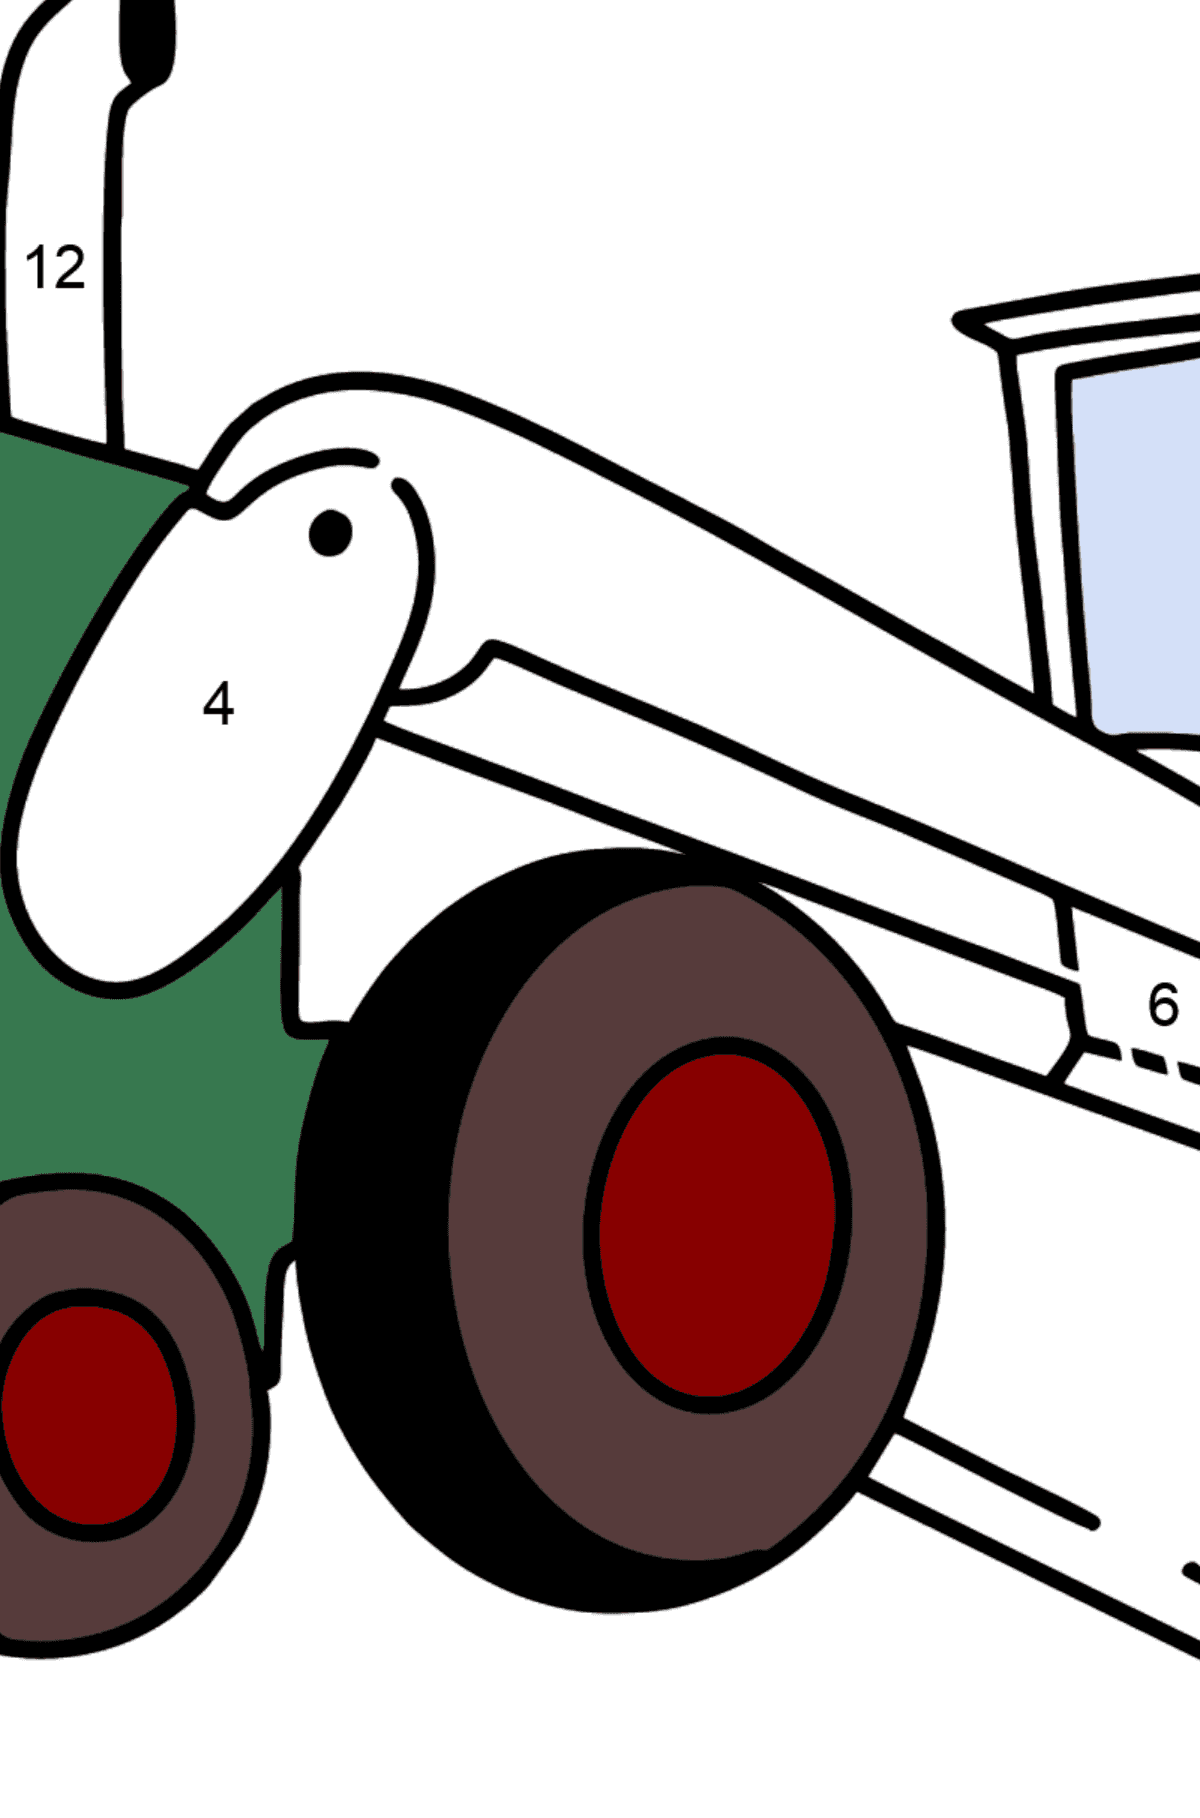 Tractor Grader coloring page - Coloring by Numbers for Kids